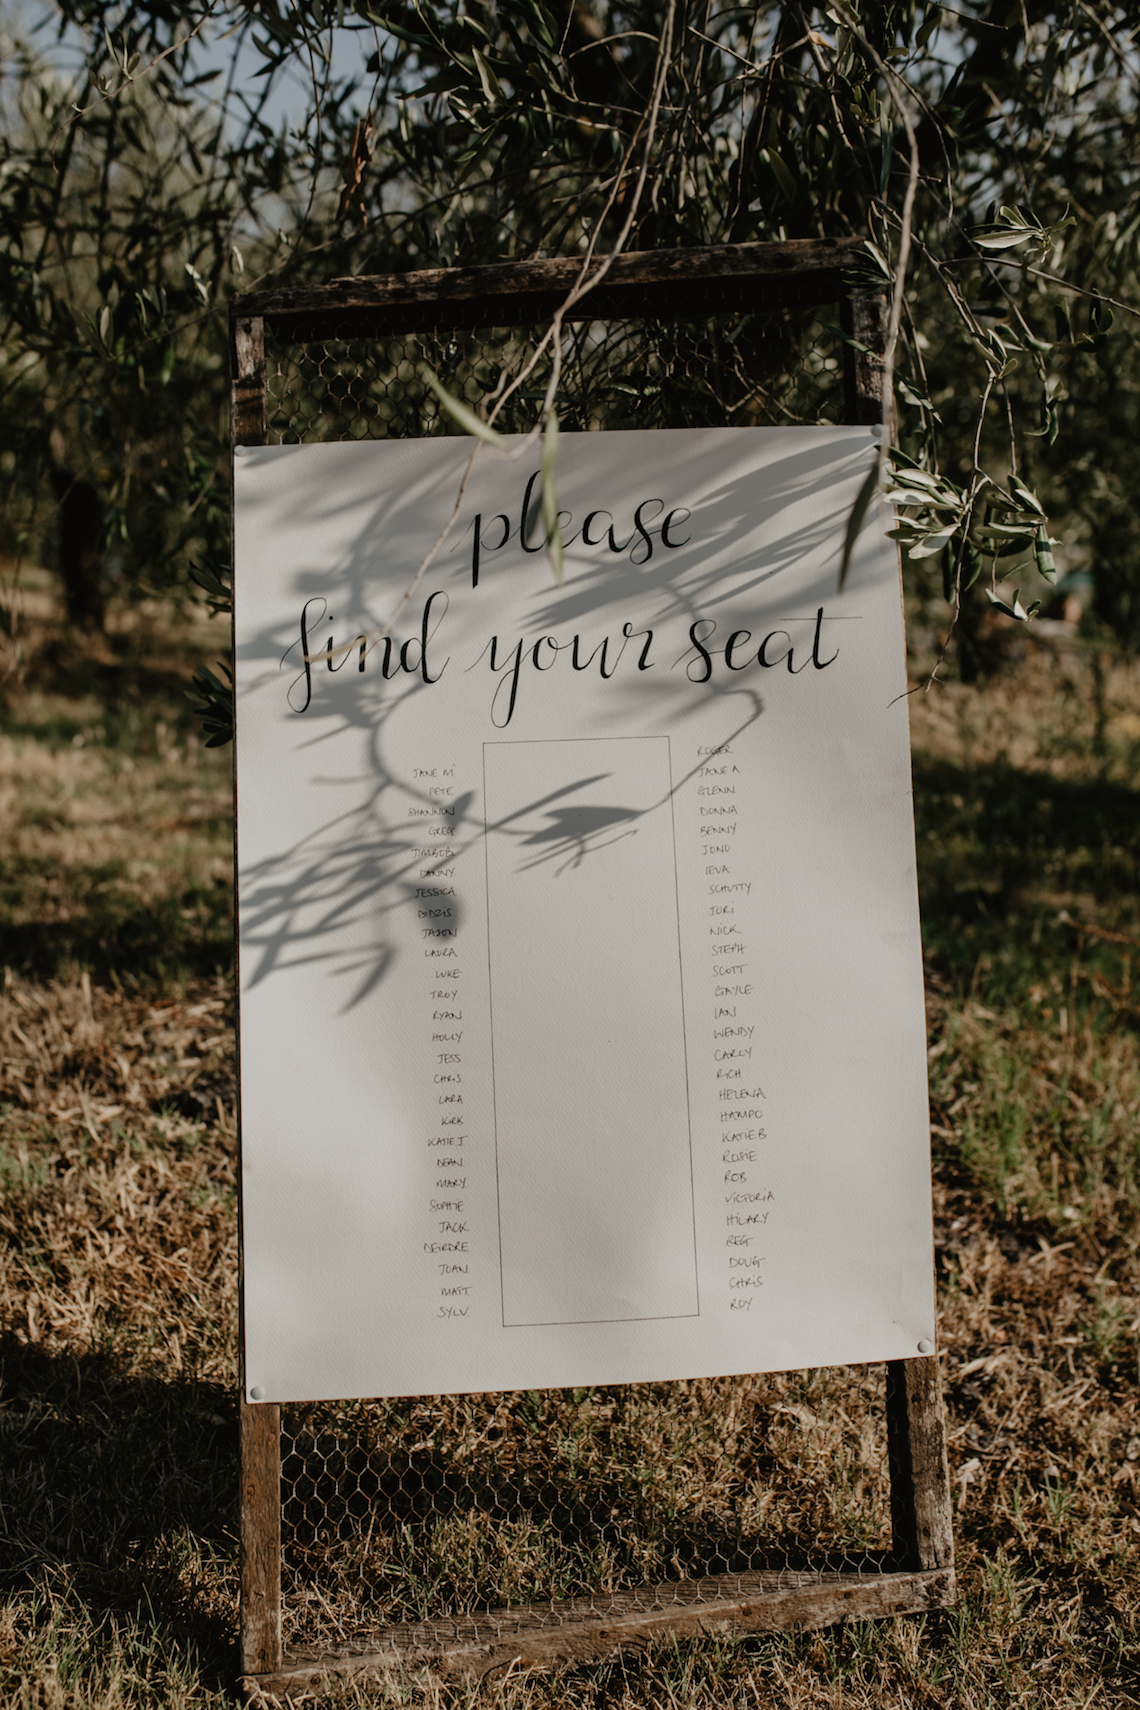 Rustic Dreamy and Intimate Italian Wedding – Federica Cavicchi 30